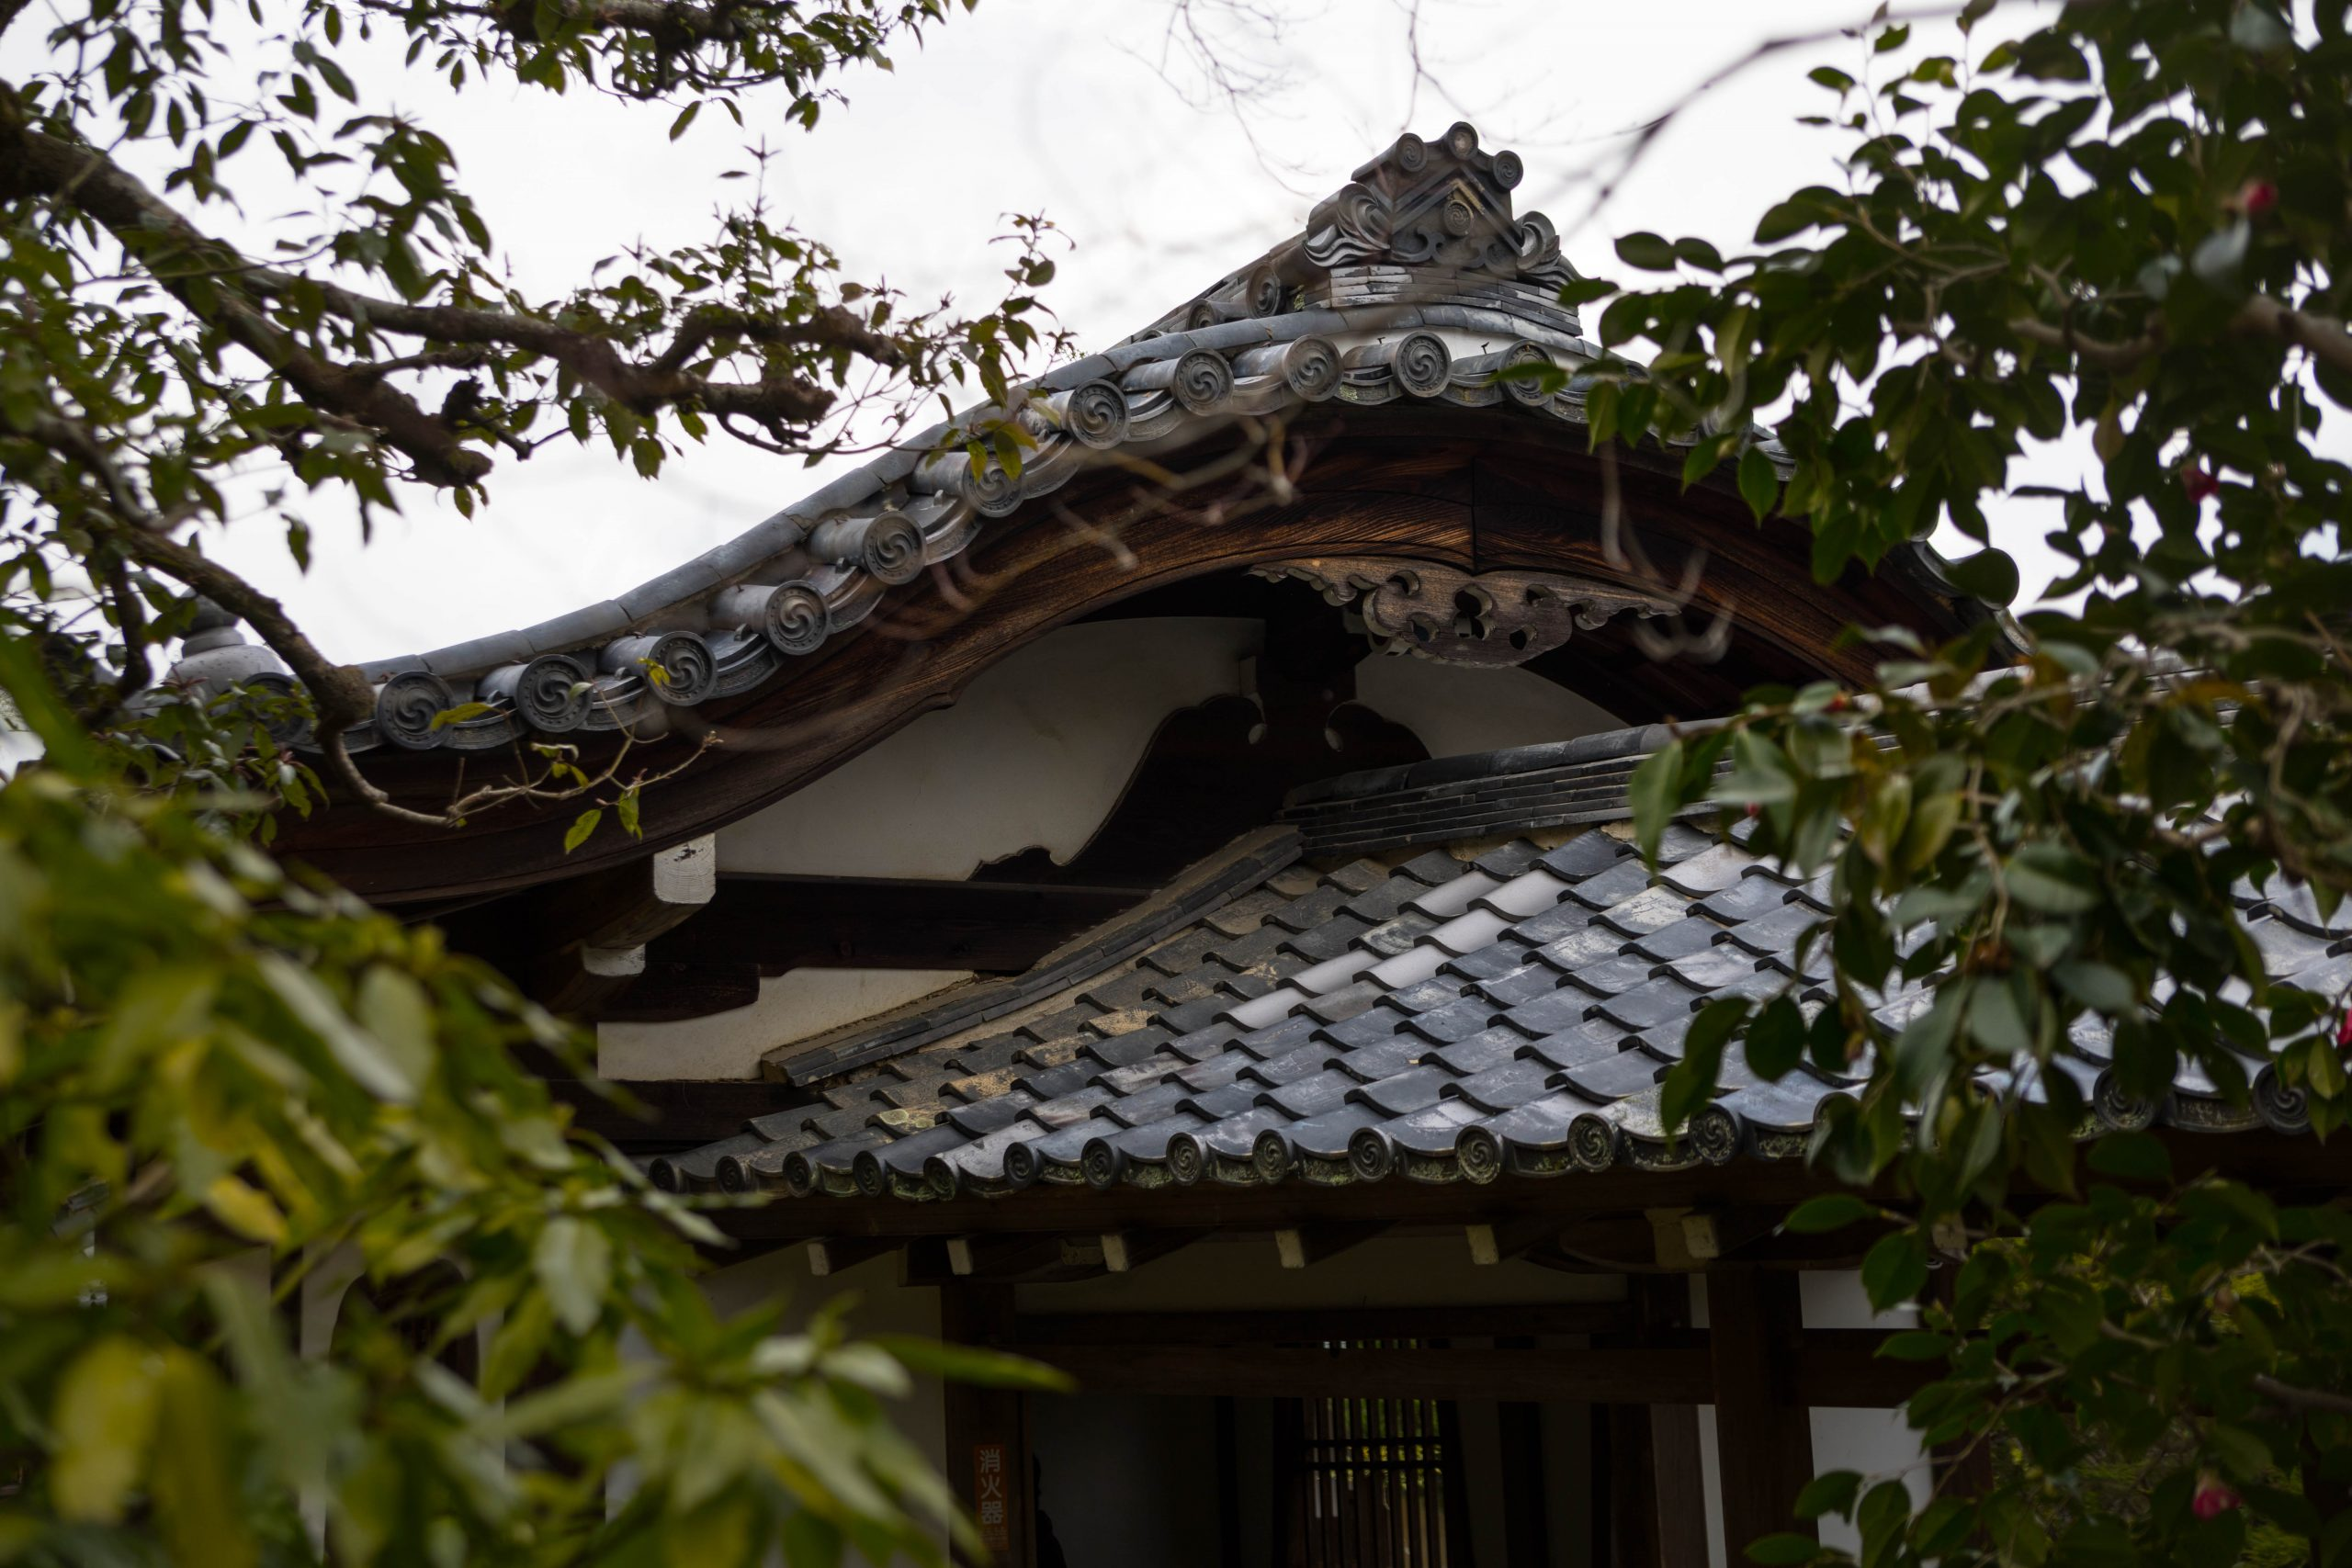 Temples and Shrines Japan the Official Luxury Travel Guide by Annie Fairfax What to See, Eat, and Do in Kyoto